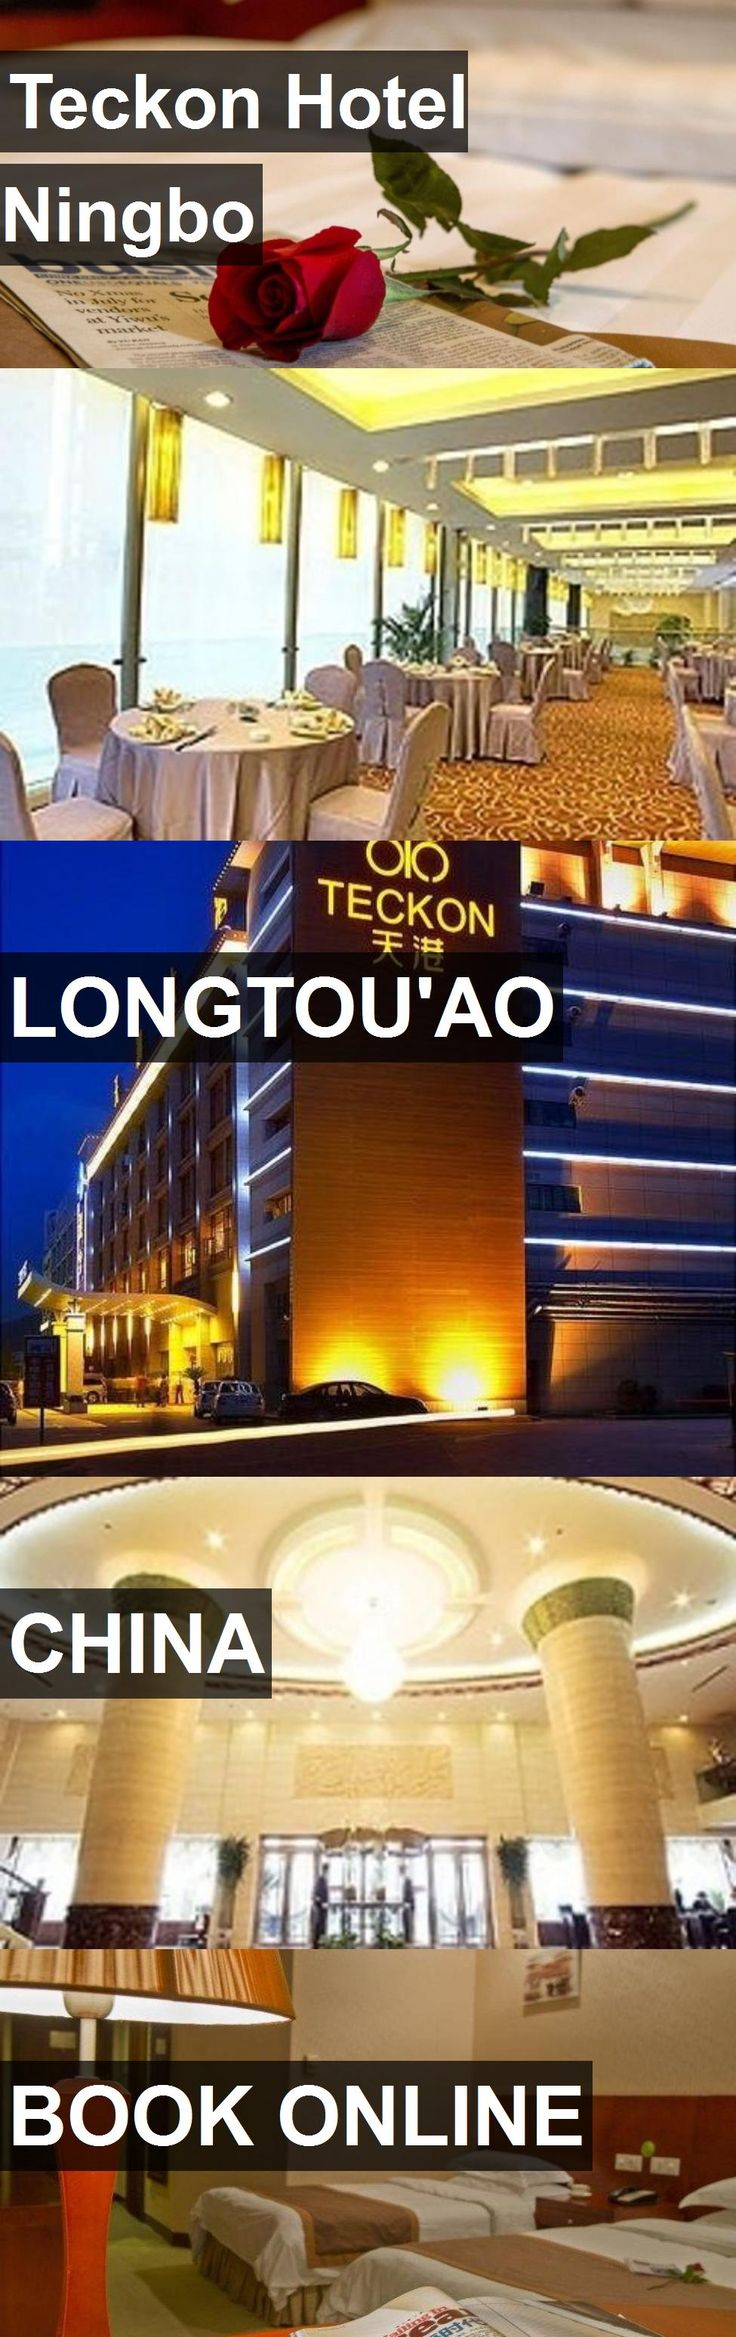 Teckon Hotel Ningbo in Longtou'ao, China. For more information, photos, reviews and best prices please follow the link. #China #Longtou'ao #travel #vacation #hotel